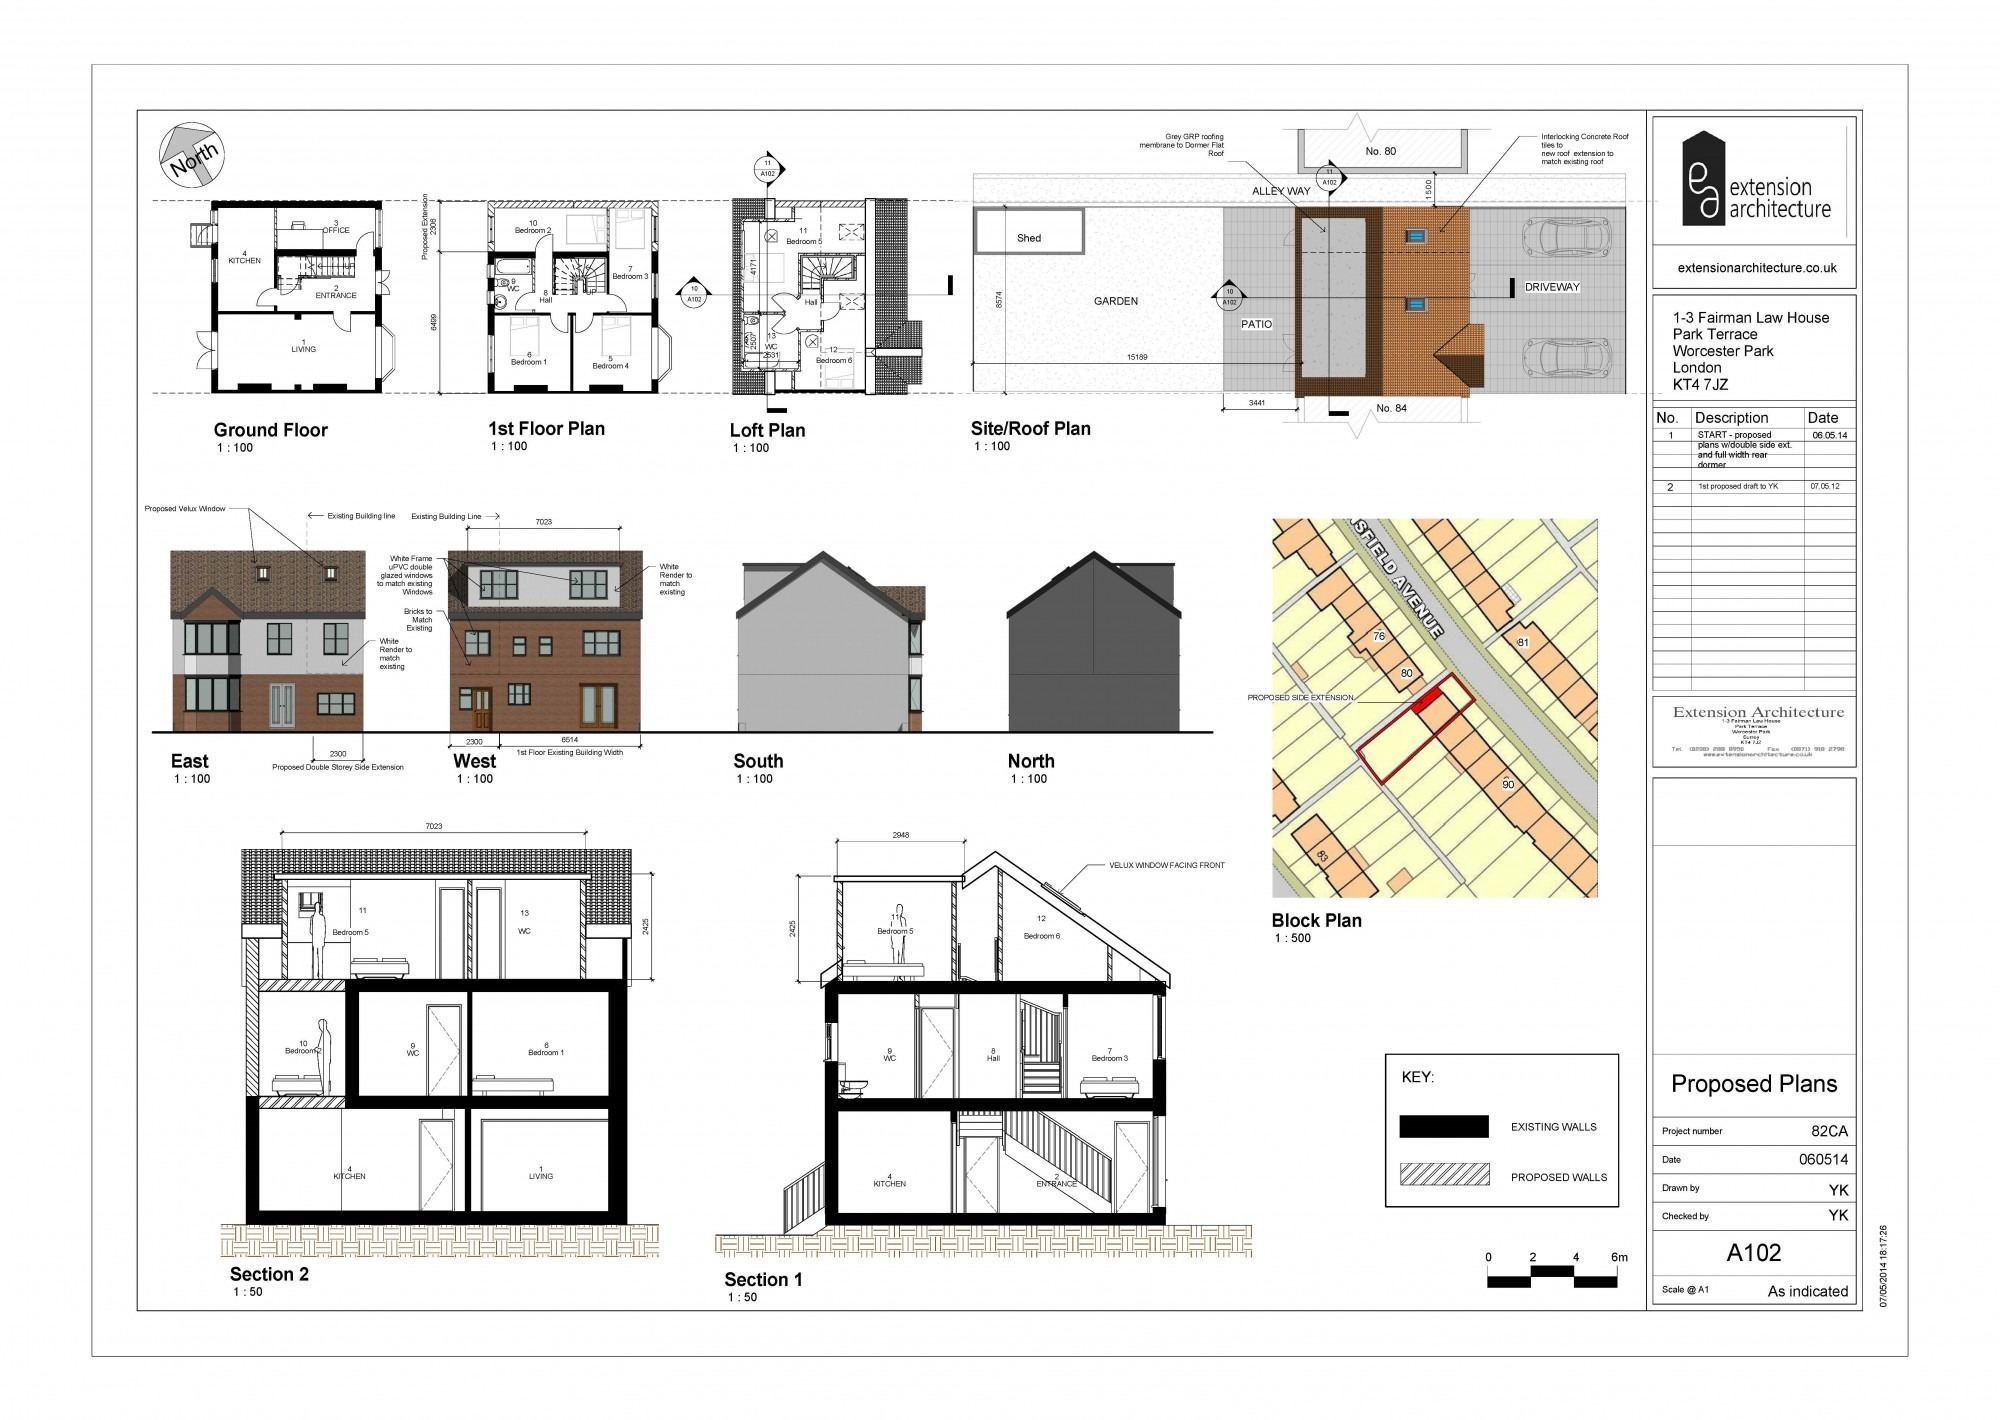 Application Dessin 3d Planning Applications And Drawings In London Extension